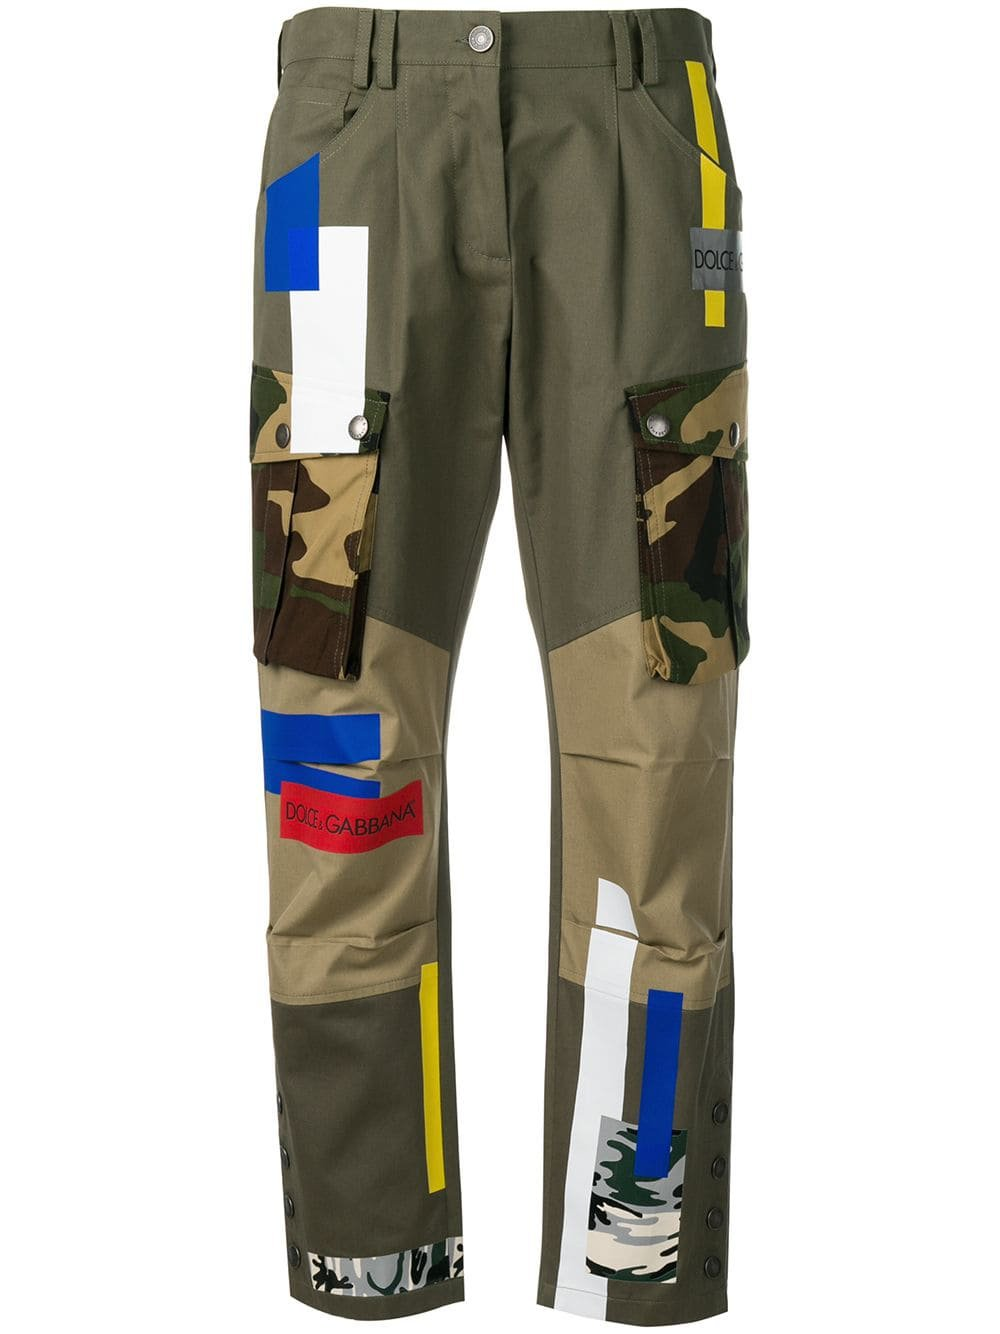 Dolce & Gabbana Patched Cargo Pants - Farfetch